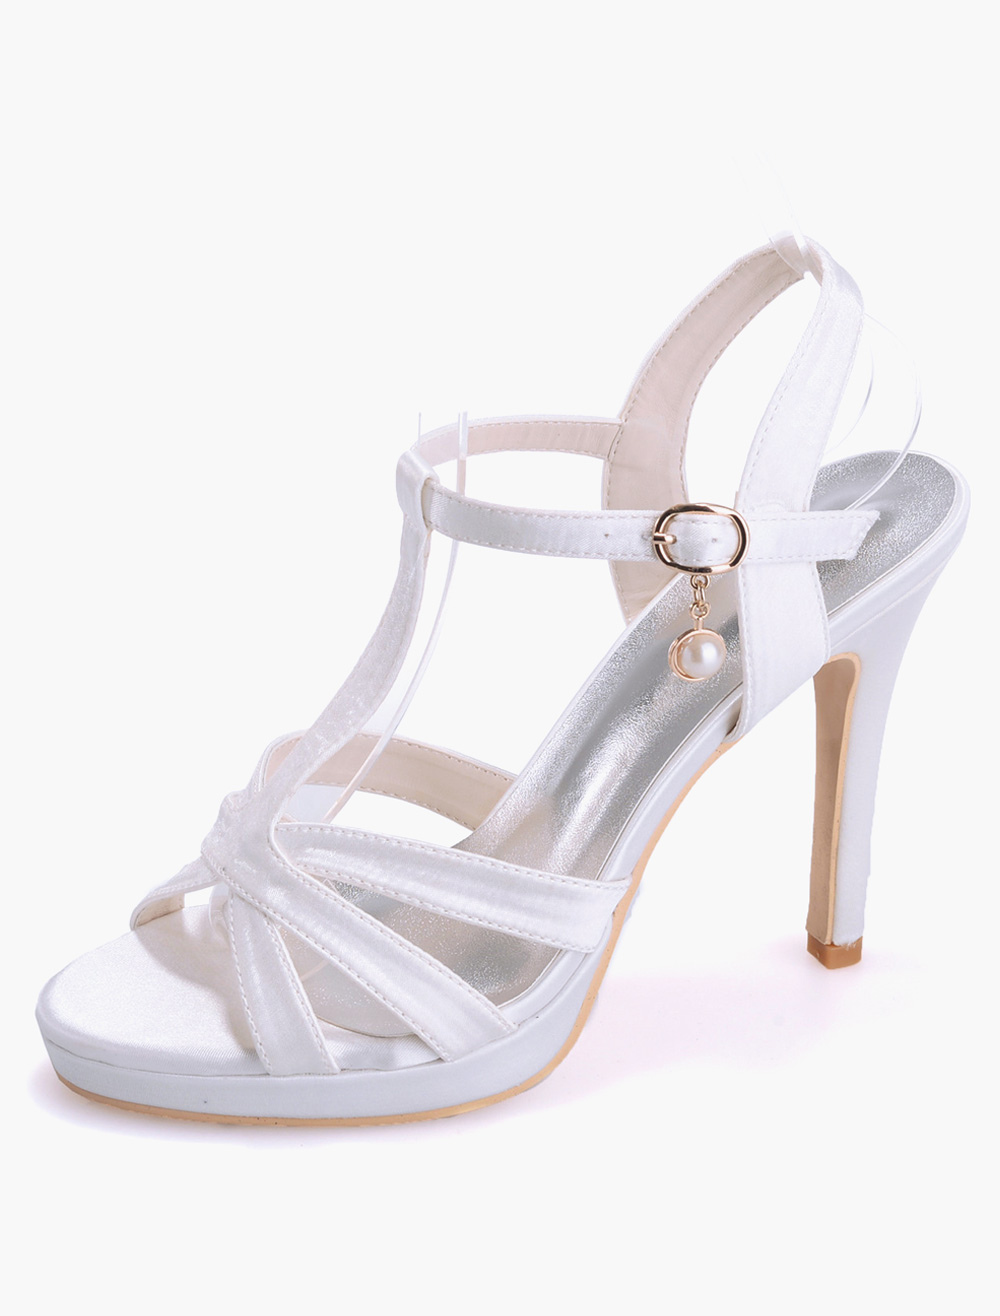 Gorgeous Open Toe Satin Evening and Bridal Sandals